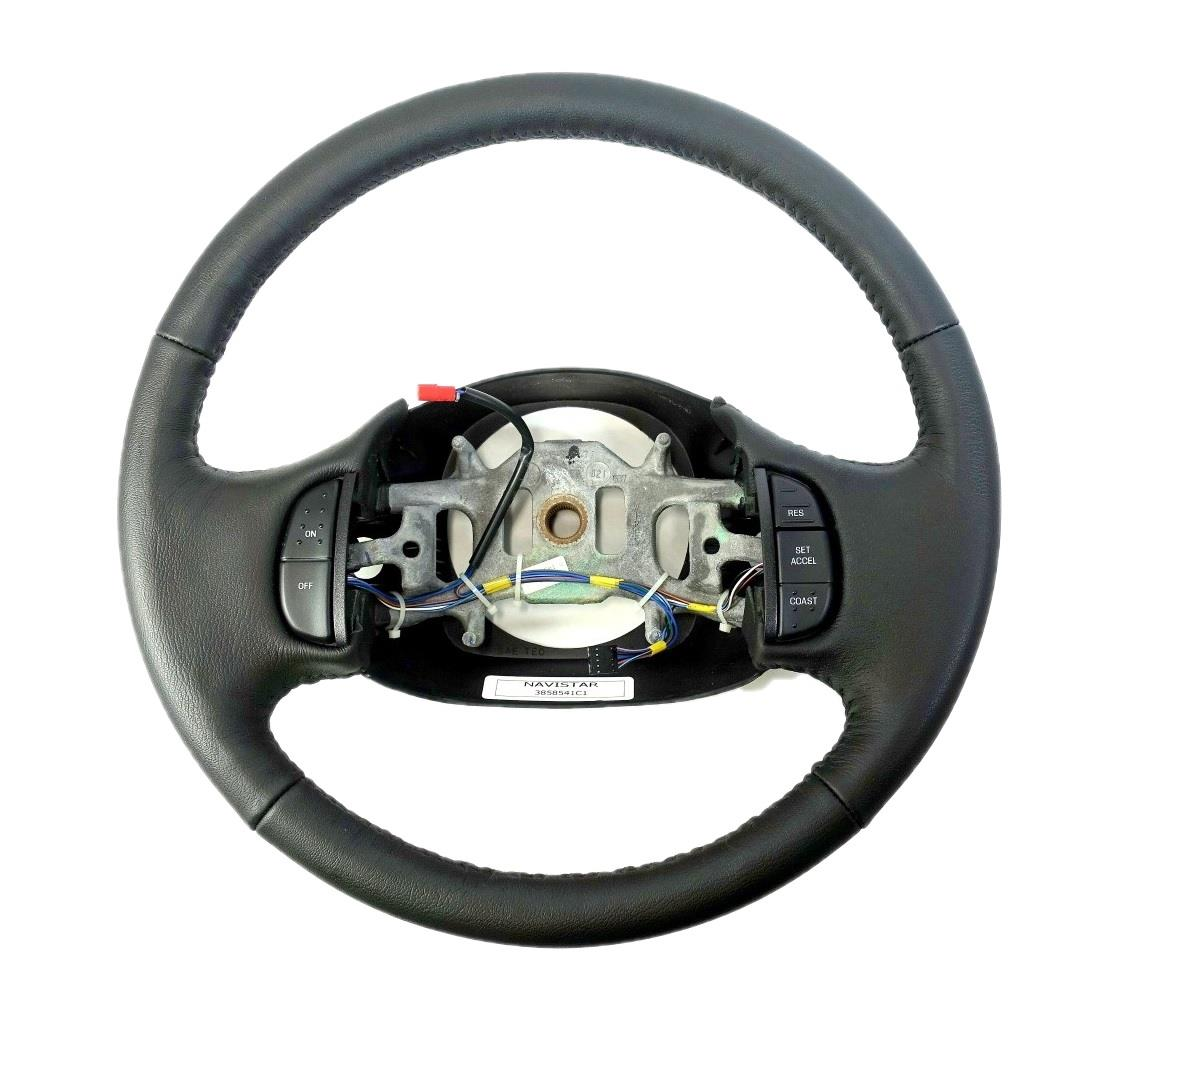 SP-2071 | SP-2071 Navistar 15 12 Inch Steering Wheel NOS (1) (Large).JPG